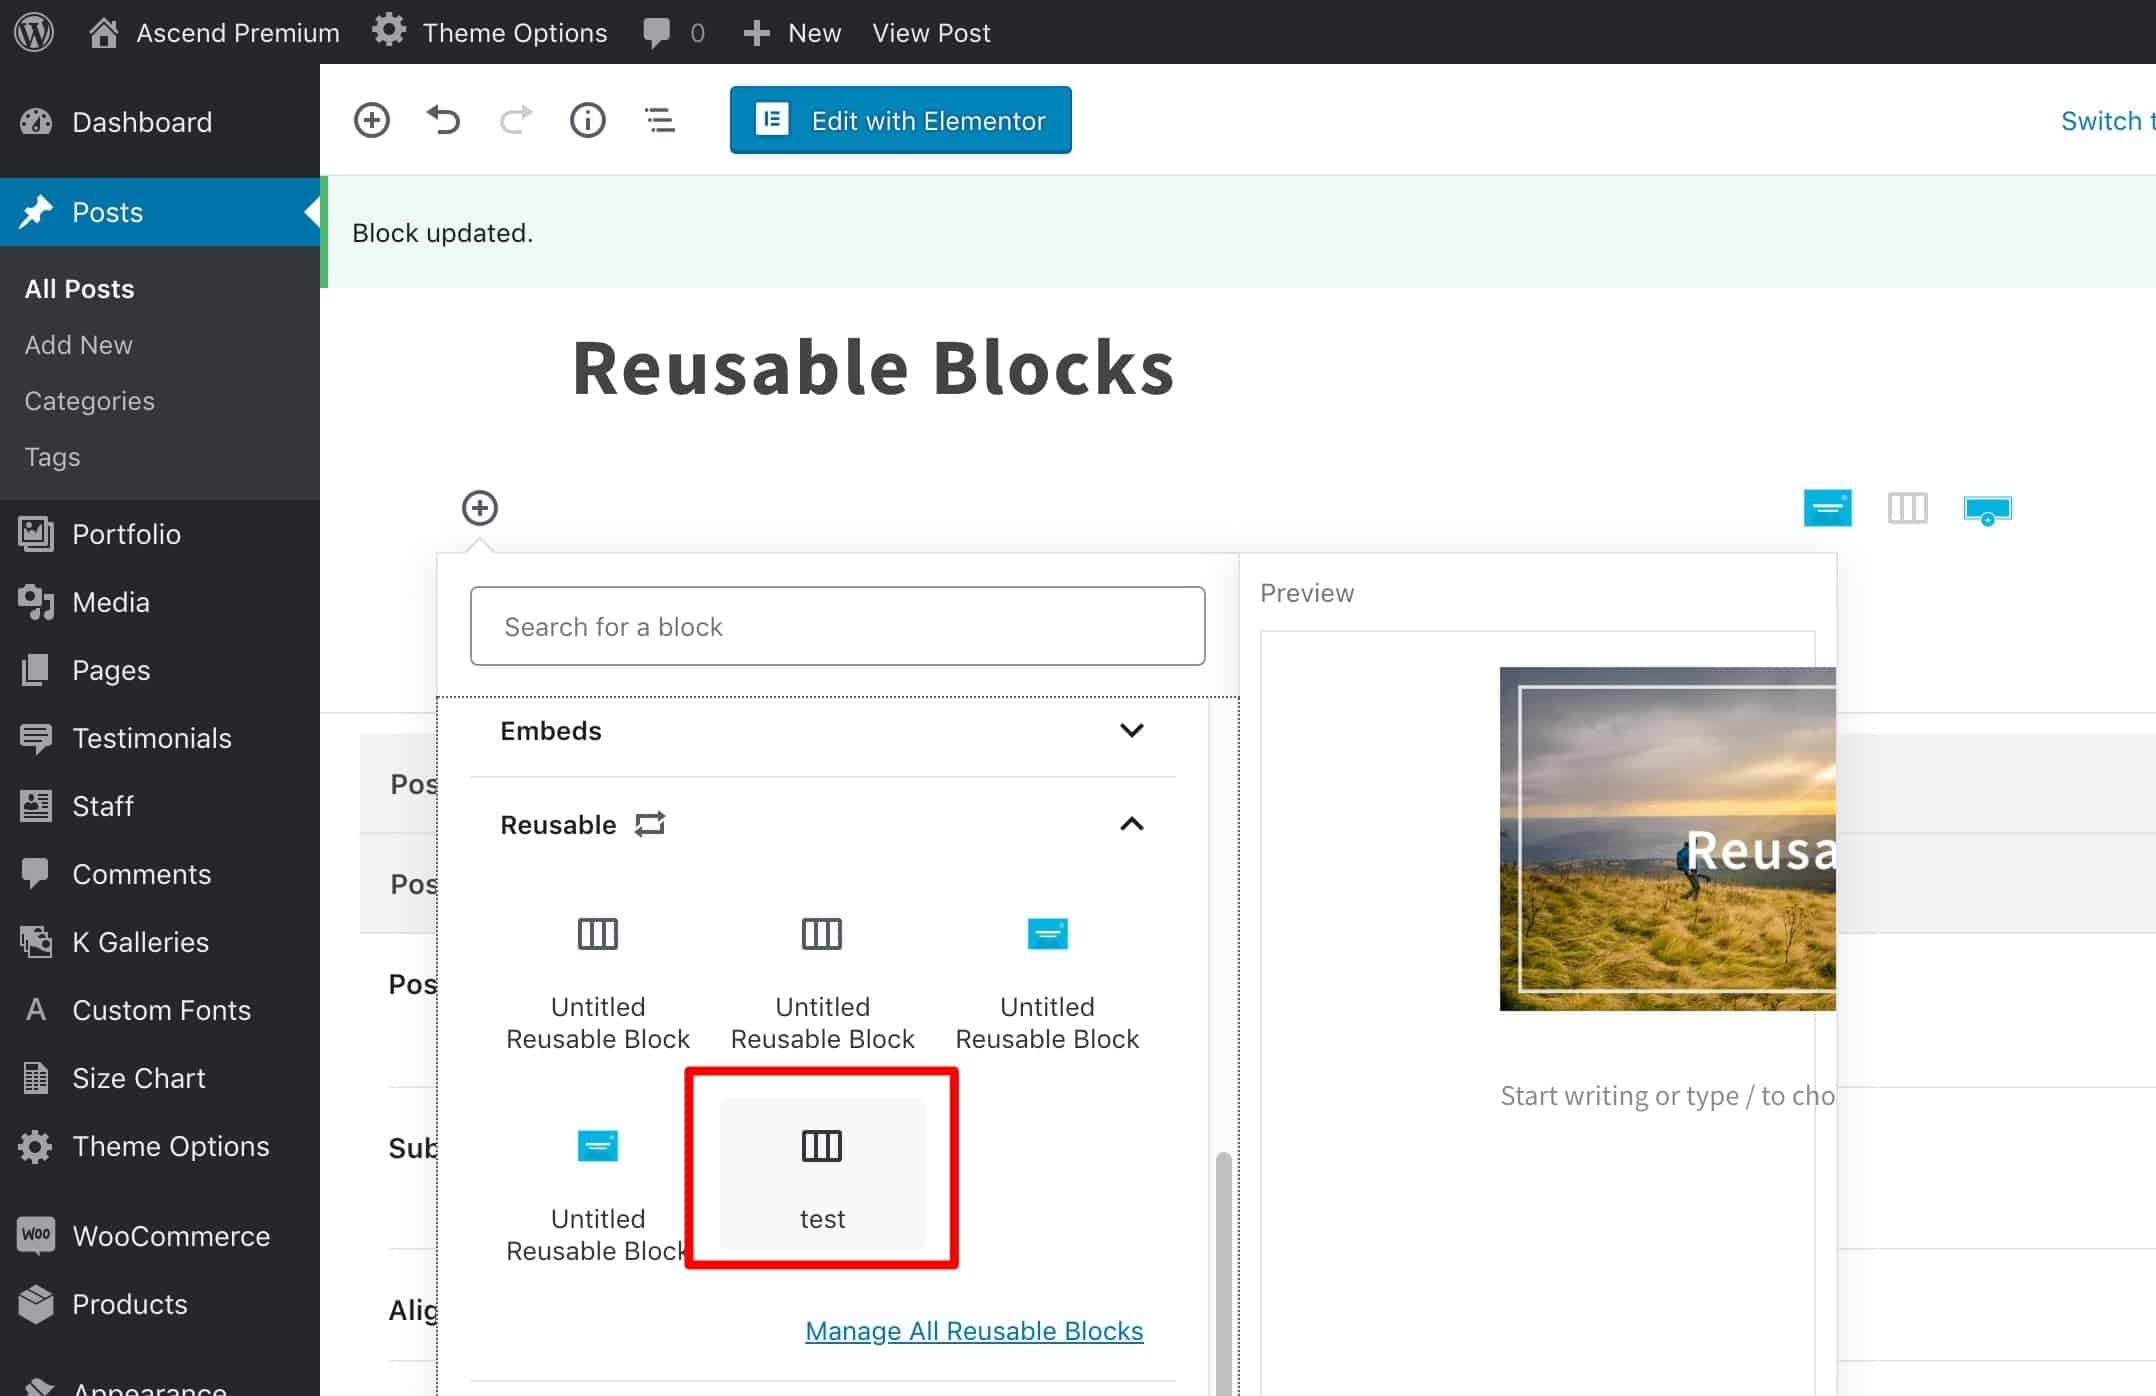 Access Reusable Block